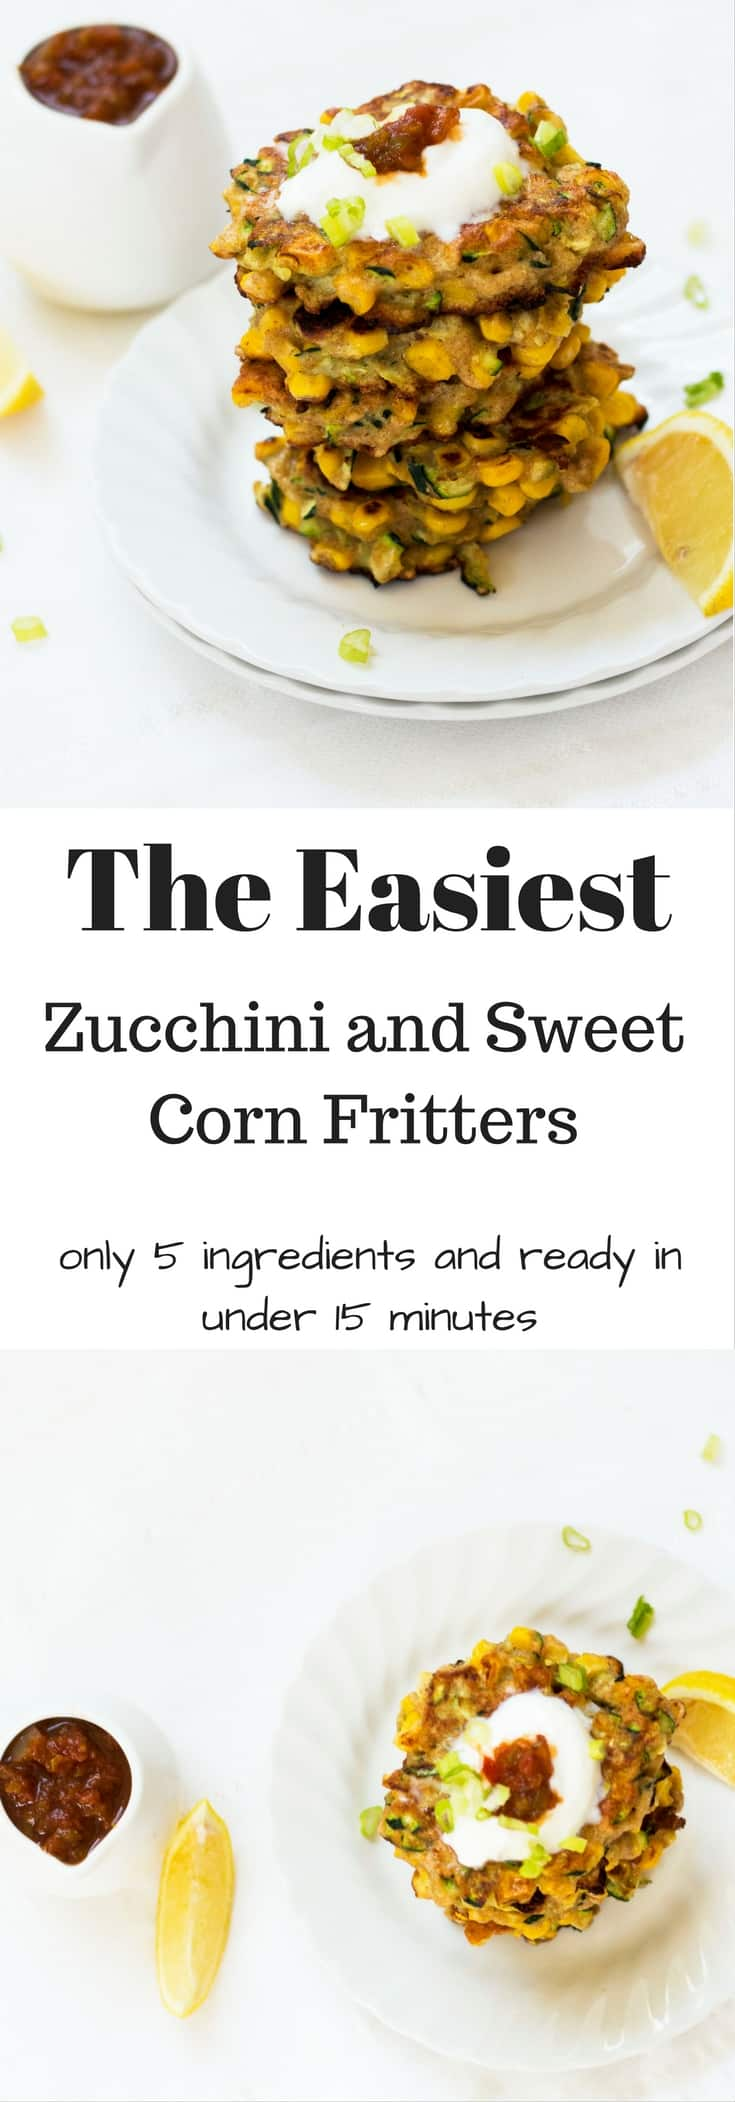 Zucchini and Sweet Corn Fritters Pinnable